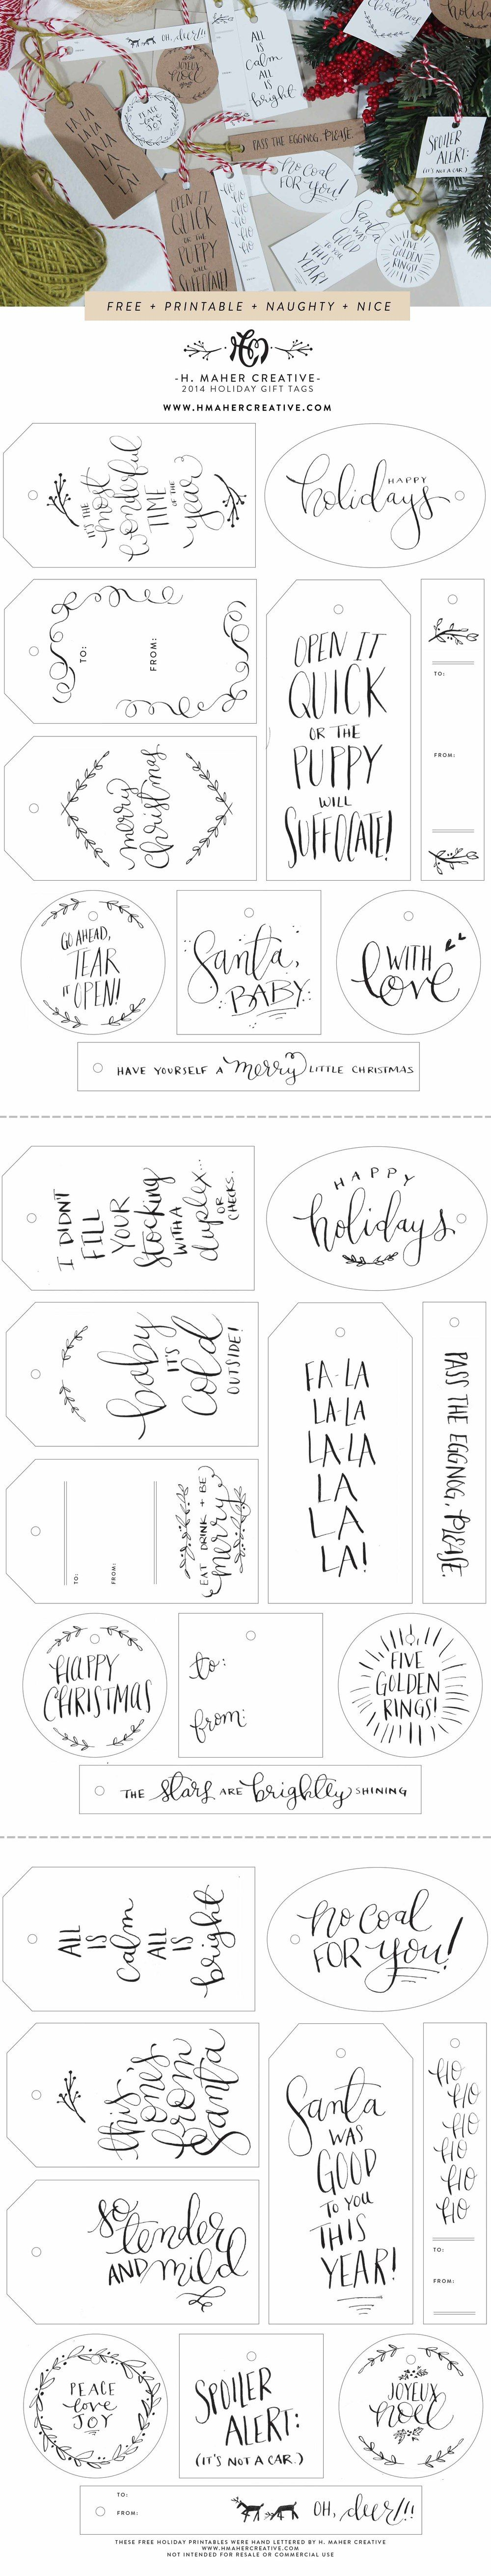 Nov  Naughty  Nice   Free Printable Holiday Gift Tags